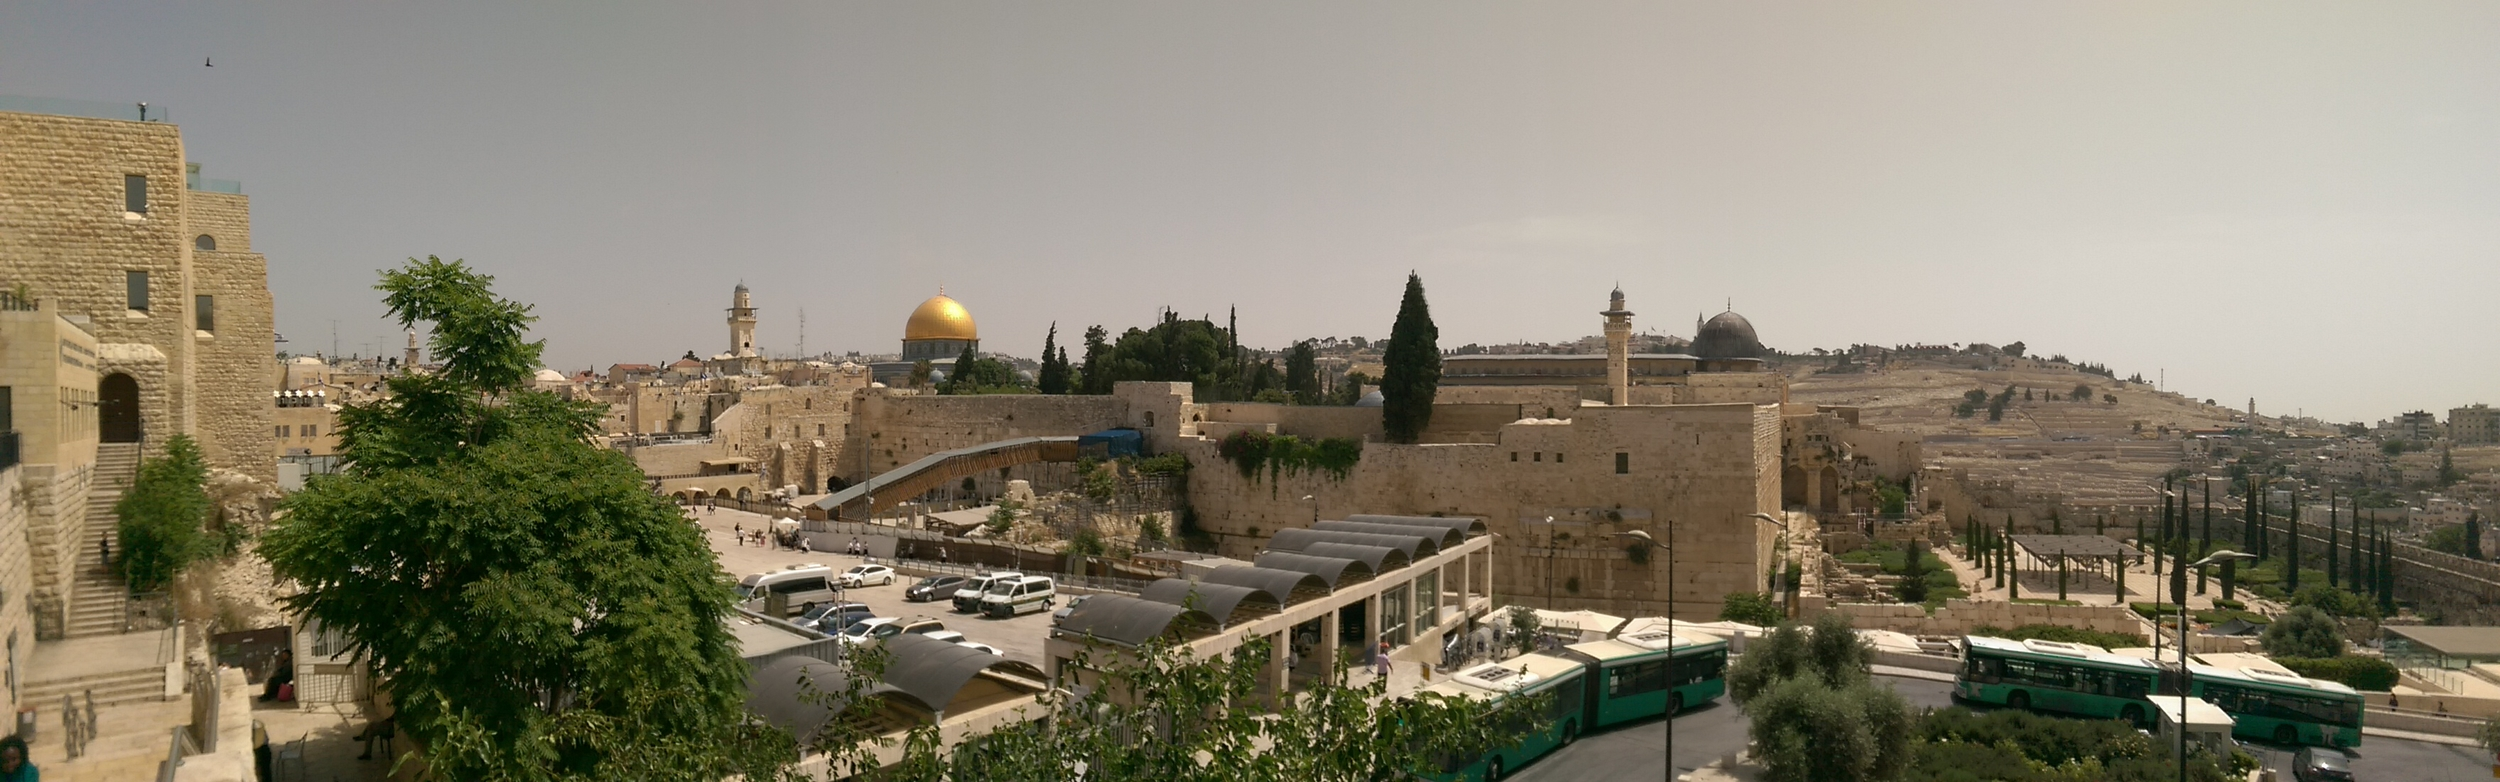 Glimpse of the Temple Mount, with the Dome of the Rock (gold) and the Western Wall in front of that.